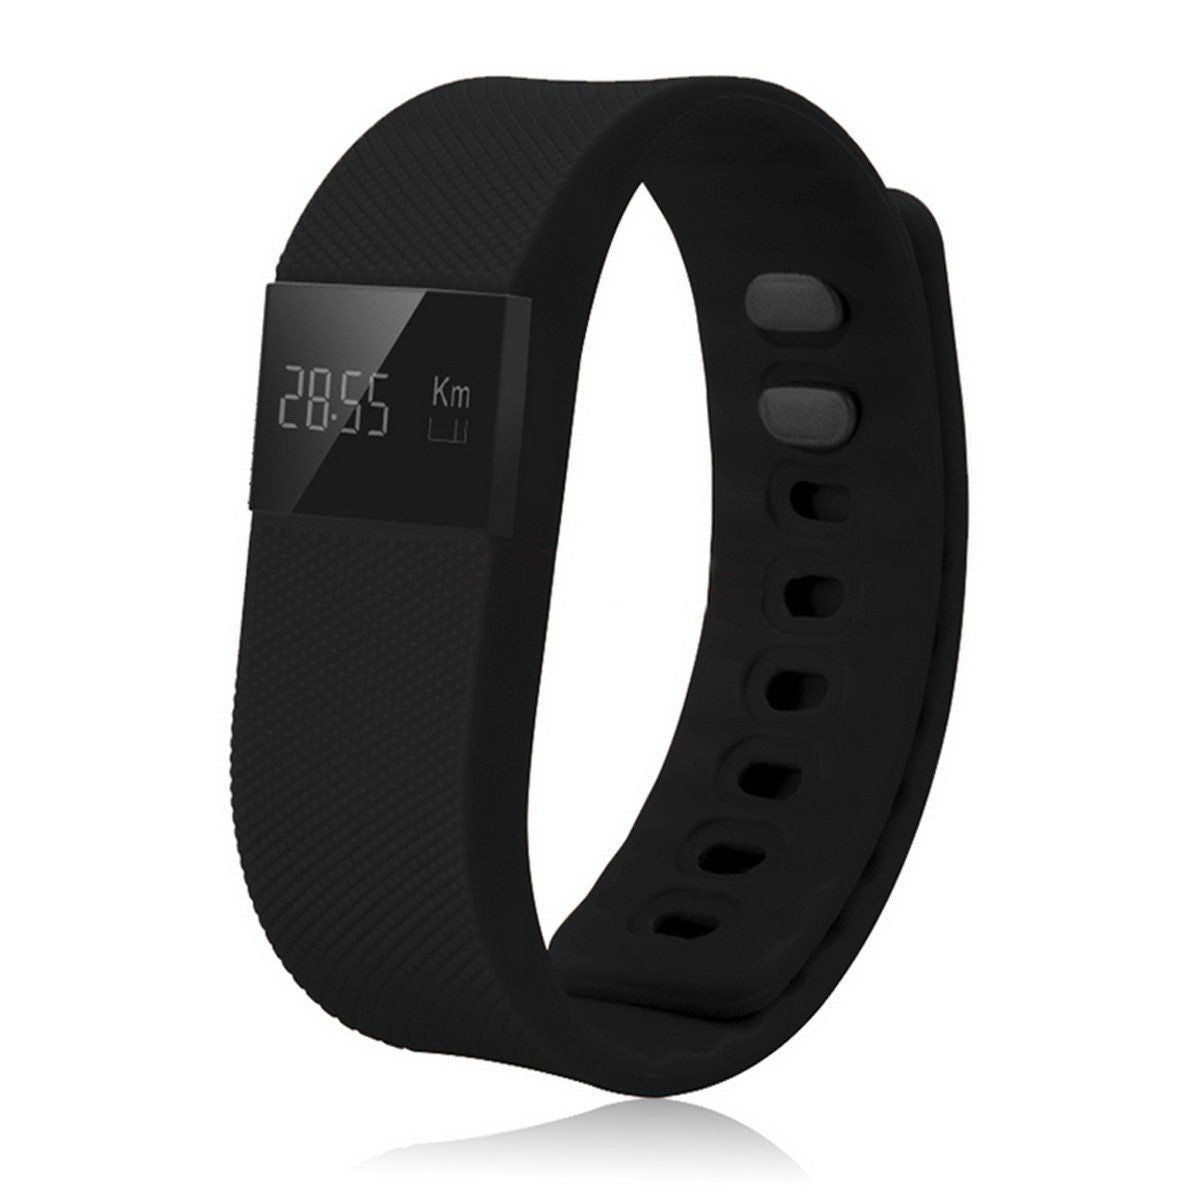 Smartband Waterproof Wristband Fitness Sleep Tracker Pedometer Bluetooth 4.0 For Samsung iPhone IOS Android - All In One Place With Us - 4